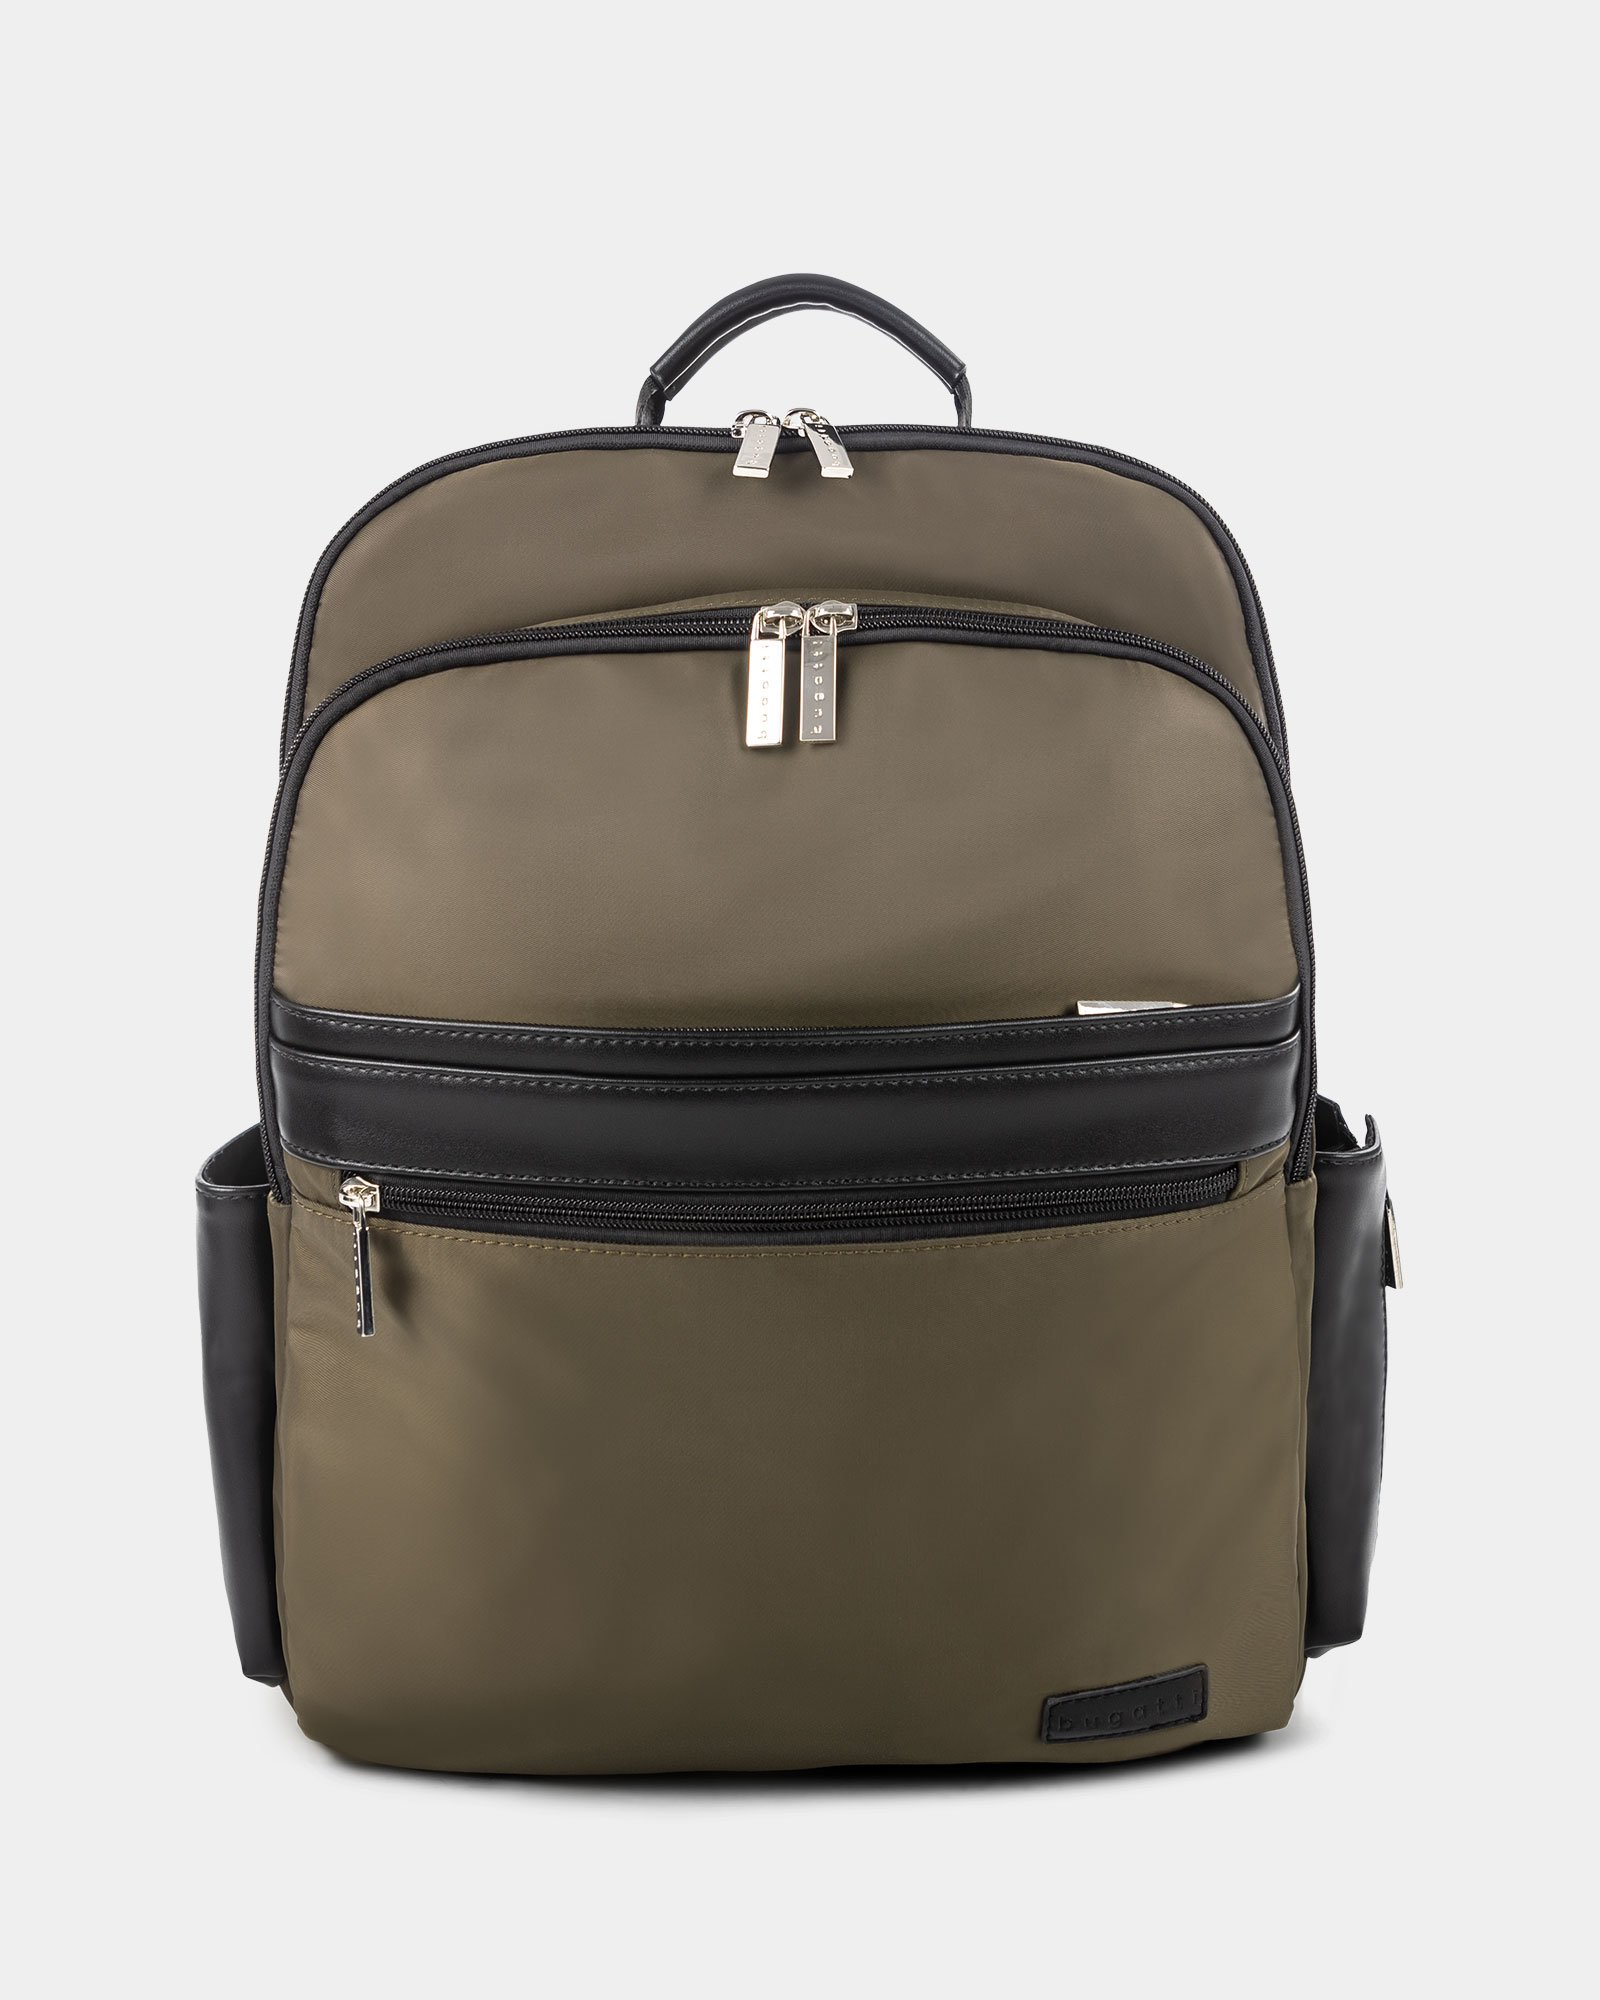 "Moretti - Backpack with Padded laptop compartment for 15.6"" + RFID protection - Khaki - Bugatti - Zoom"